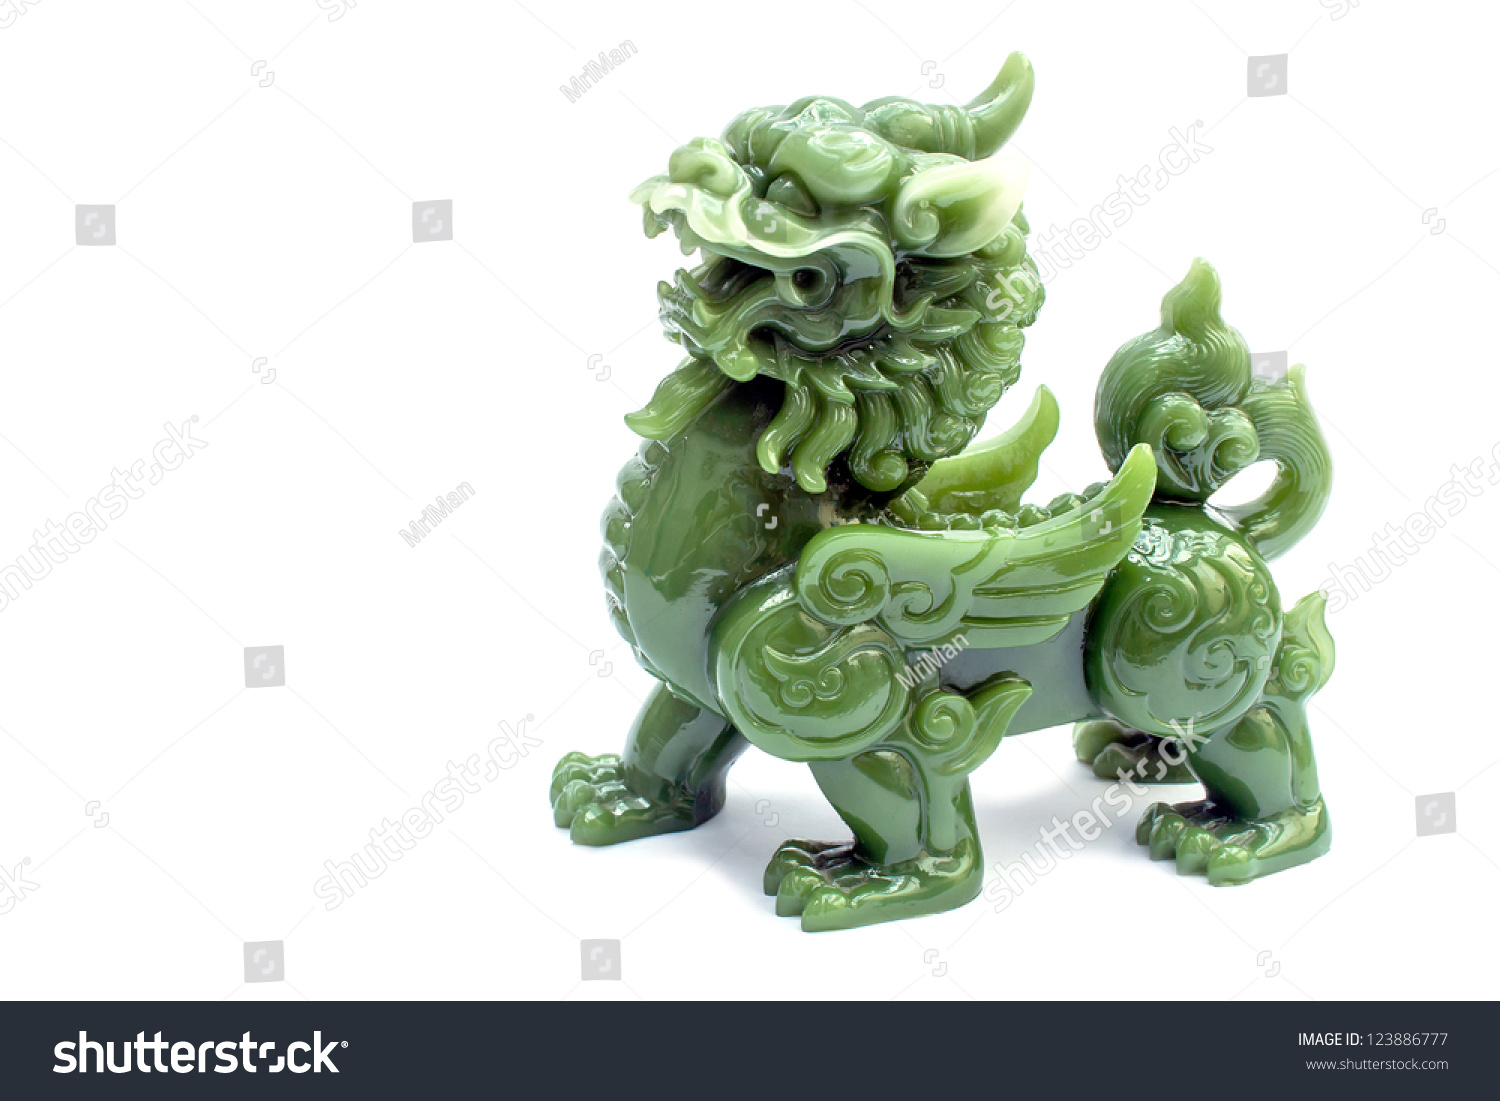 Green Pixiu On A White BackgroundChinese Lucky Animal